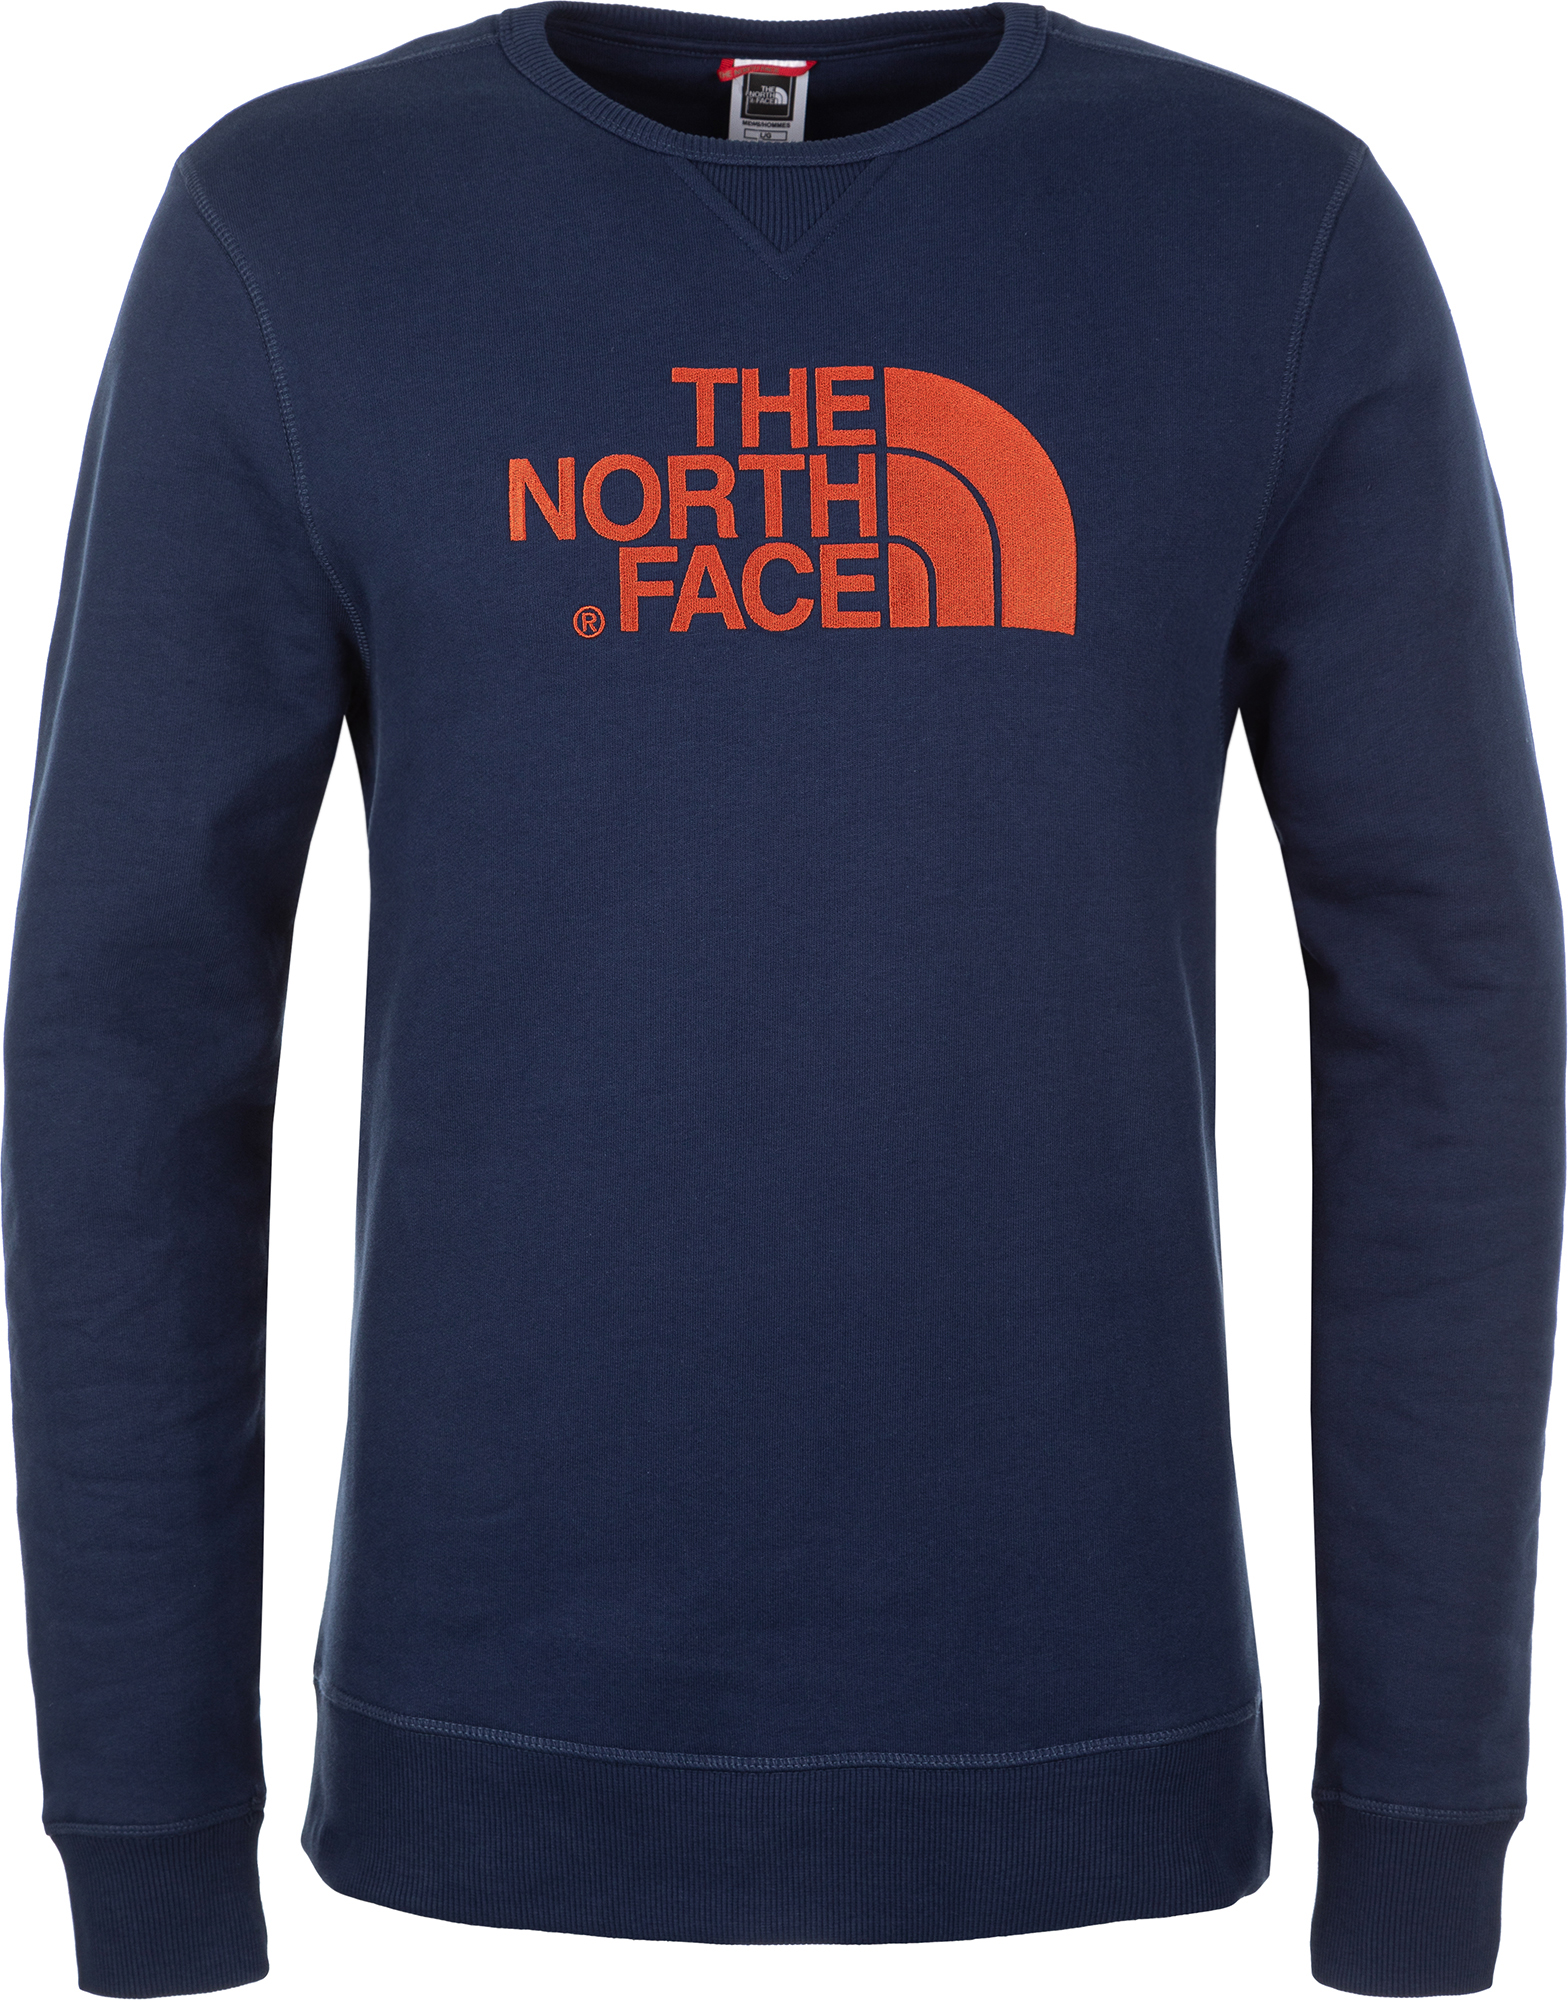 The North Face Джемпер мужской The North Face Drew Peak Crew, размер 52 nancy drew 10